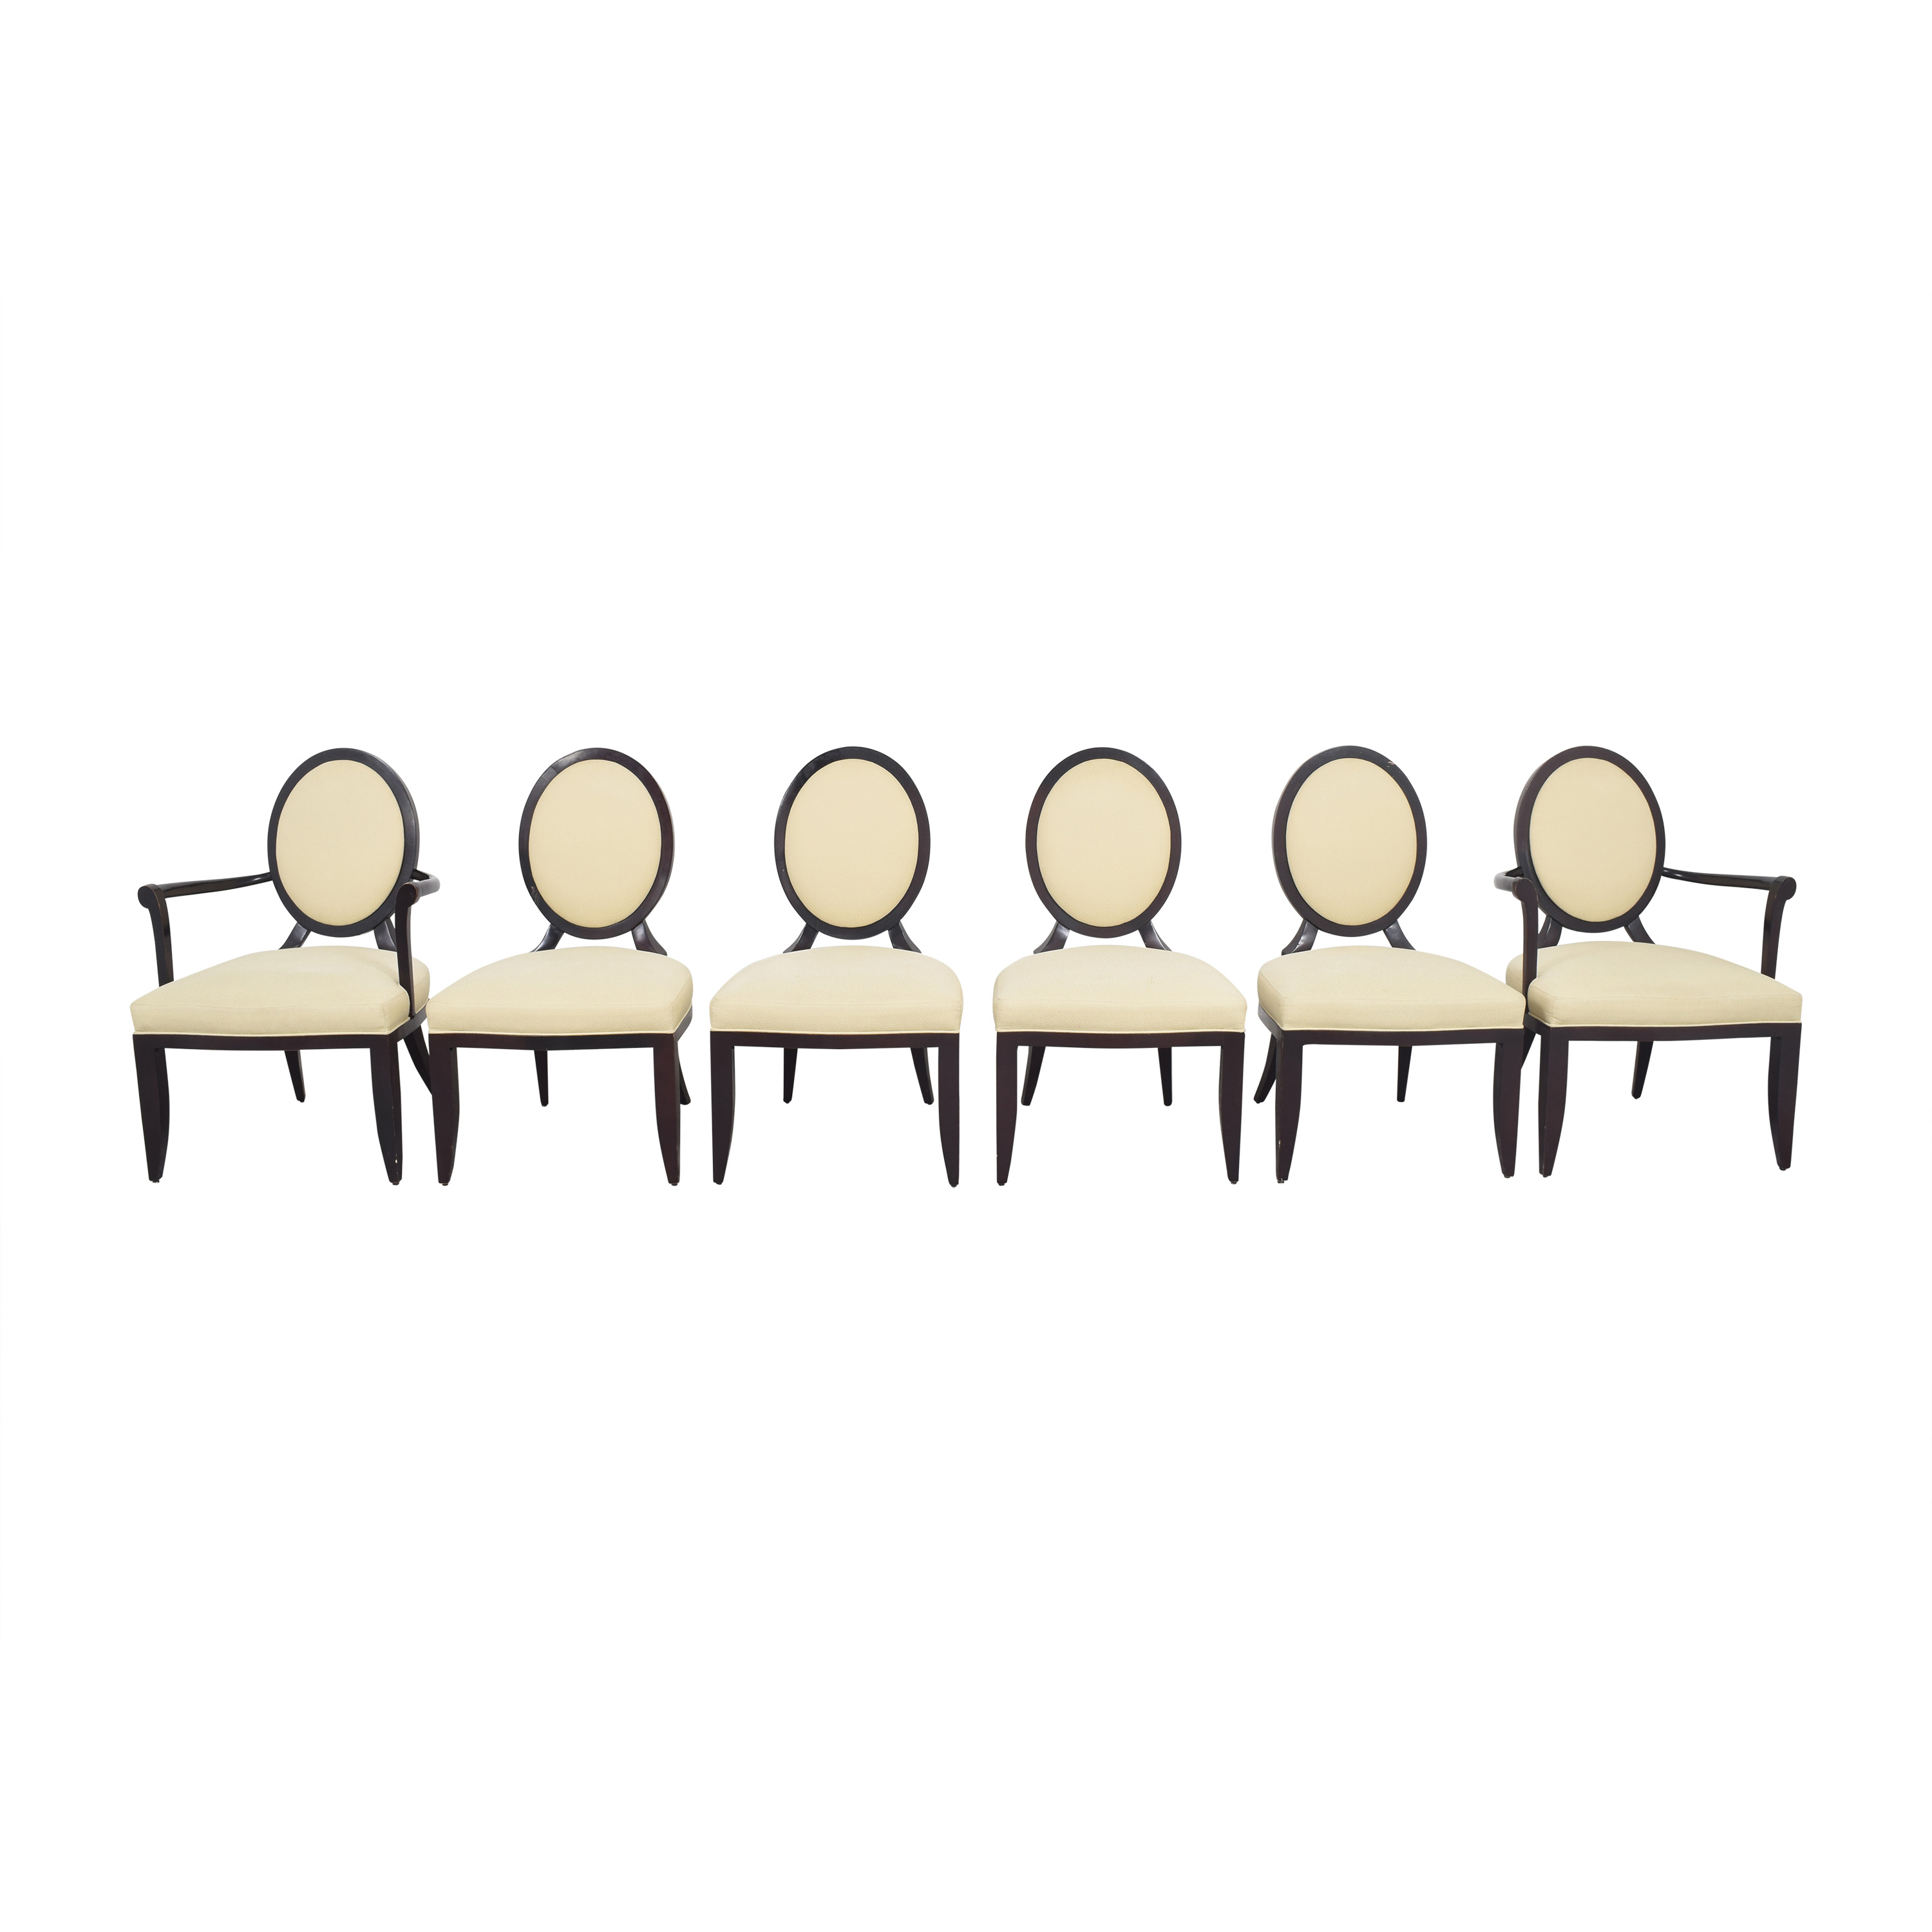 Baker Furniture Barbara Barry for Baker Furniture Oval X Back Dining Chairs dimensions